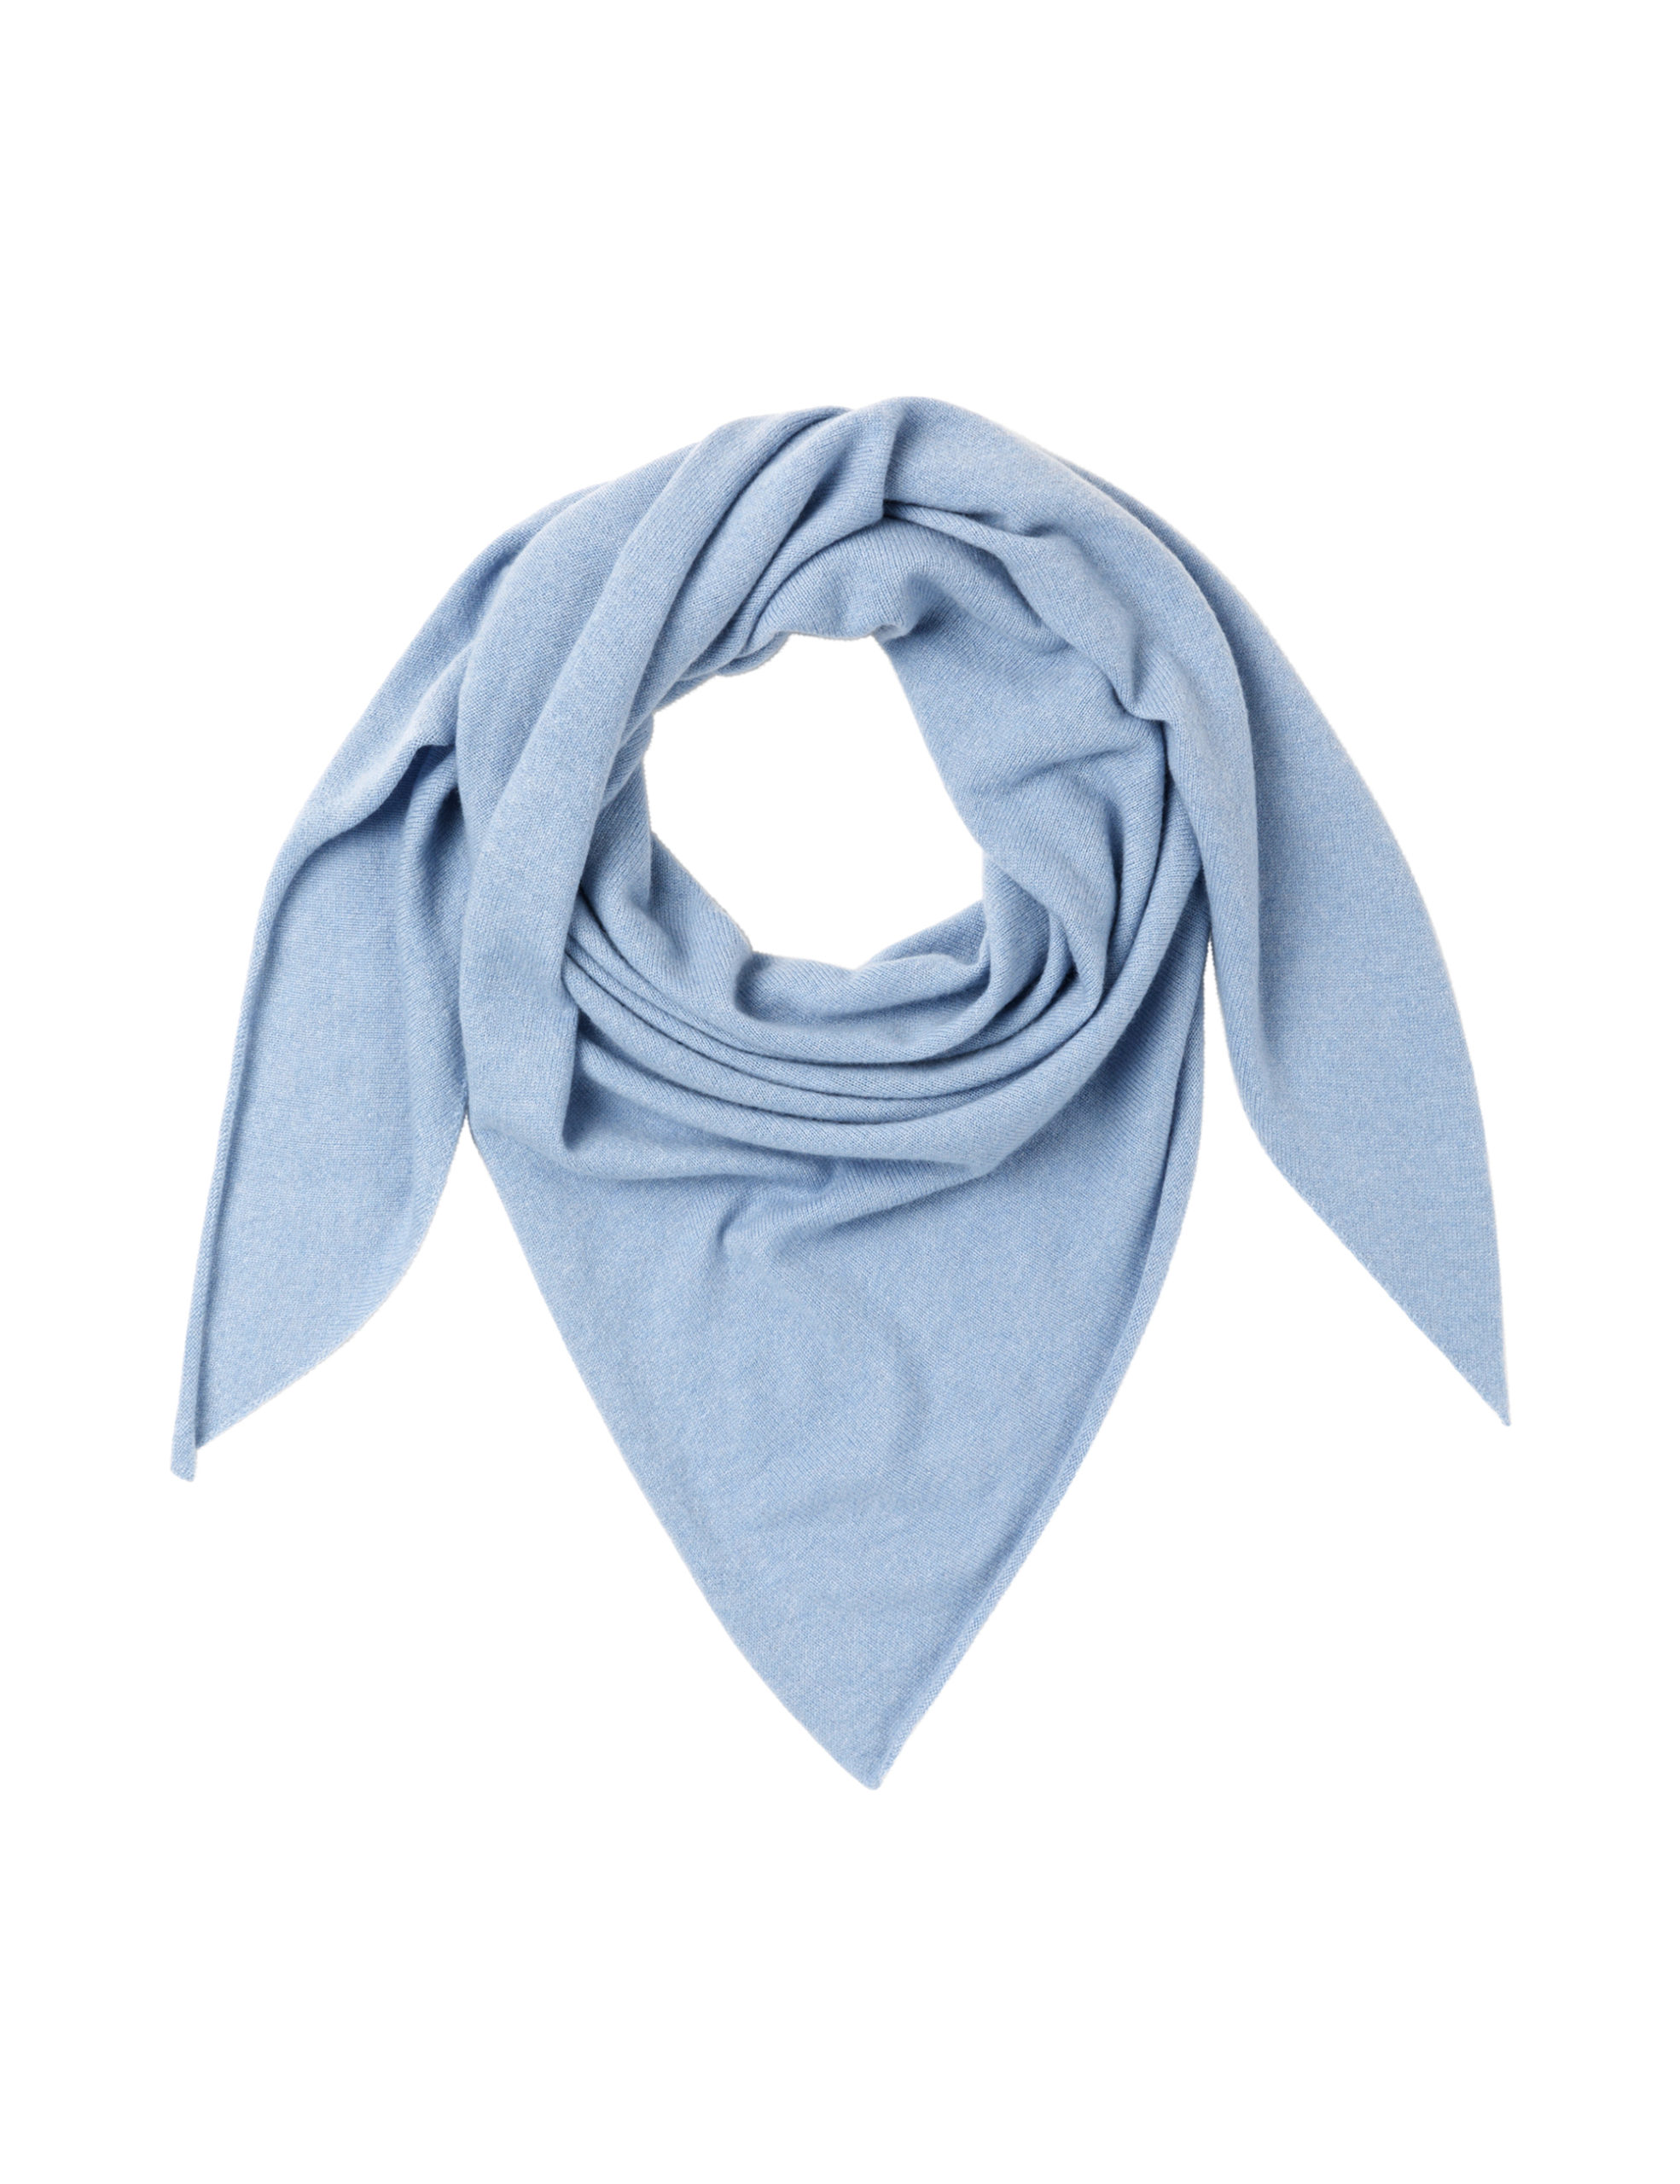 TRIANGLE SCARF – Periwinkle heather